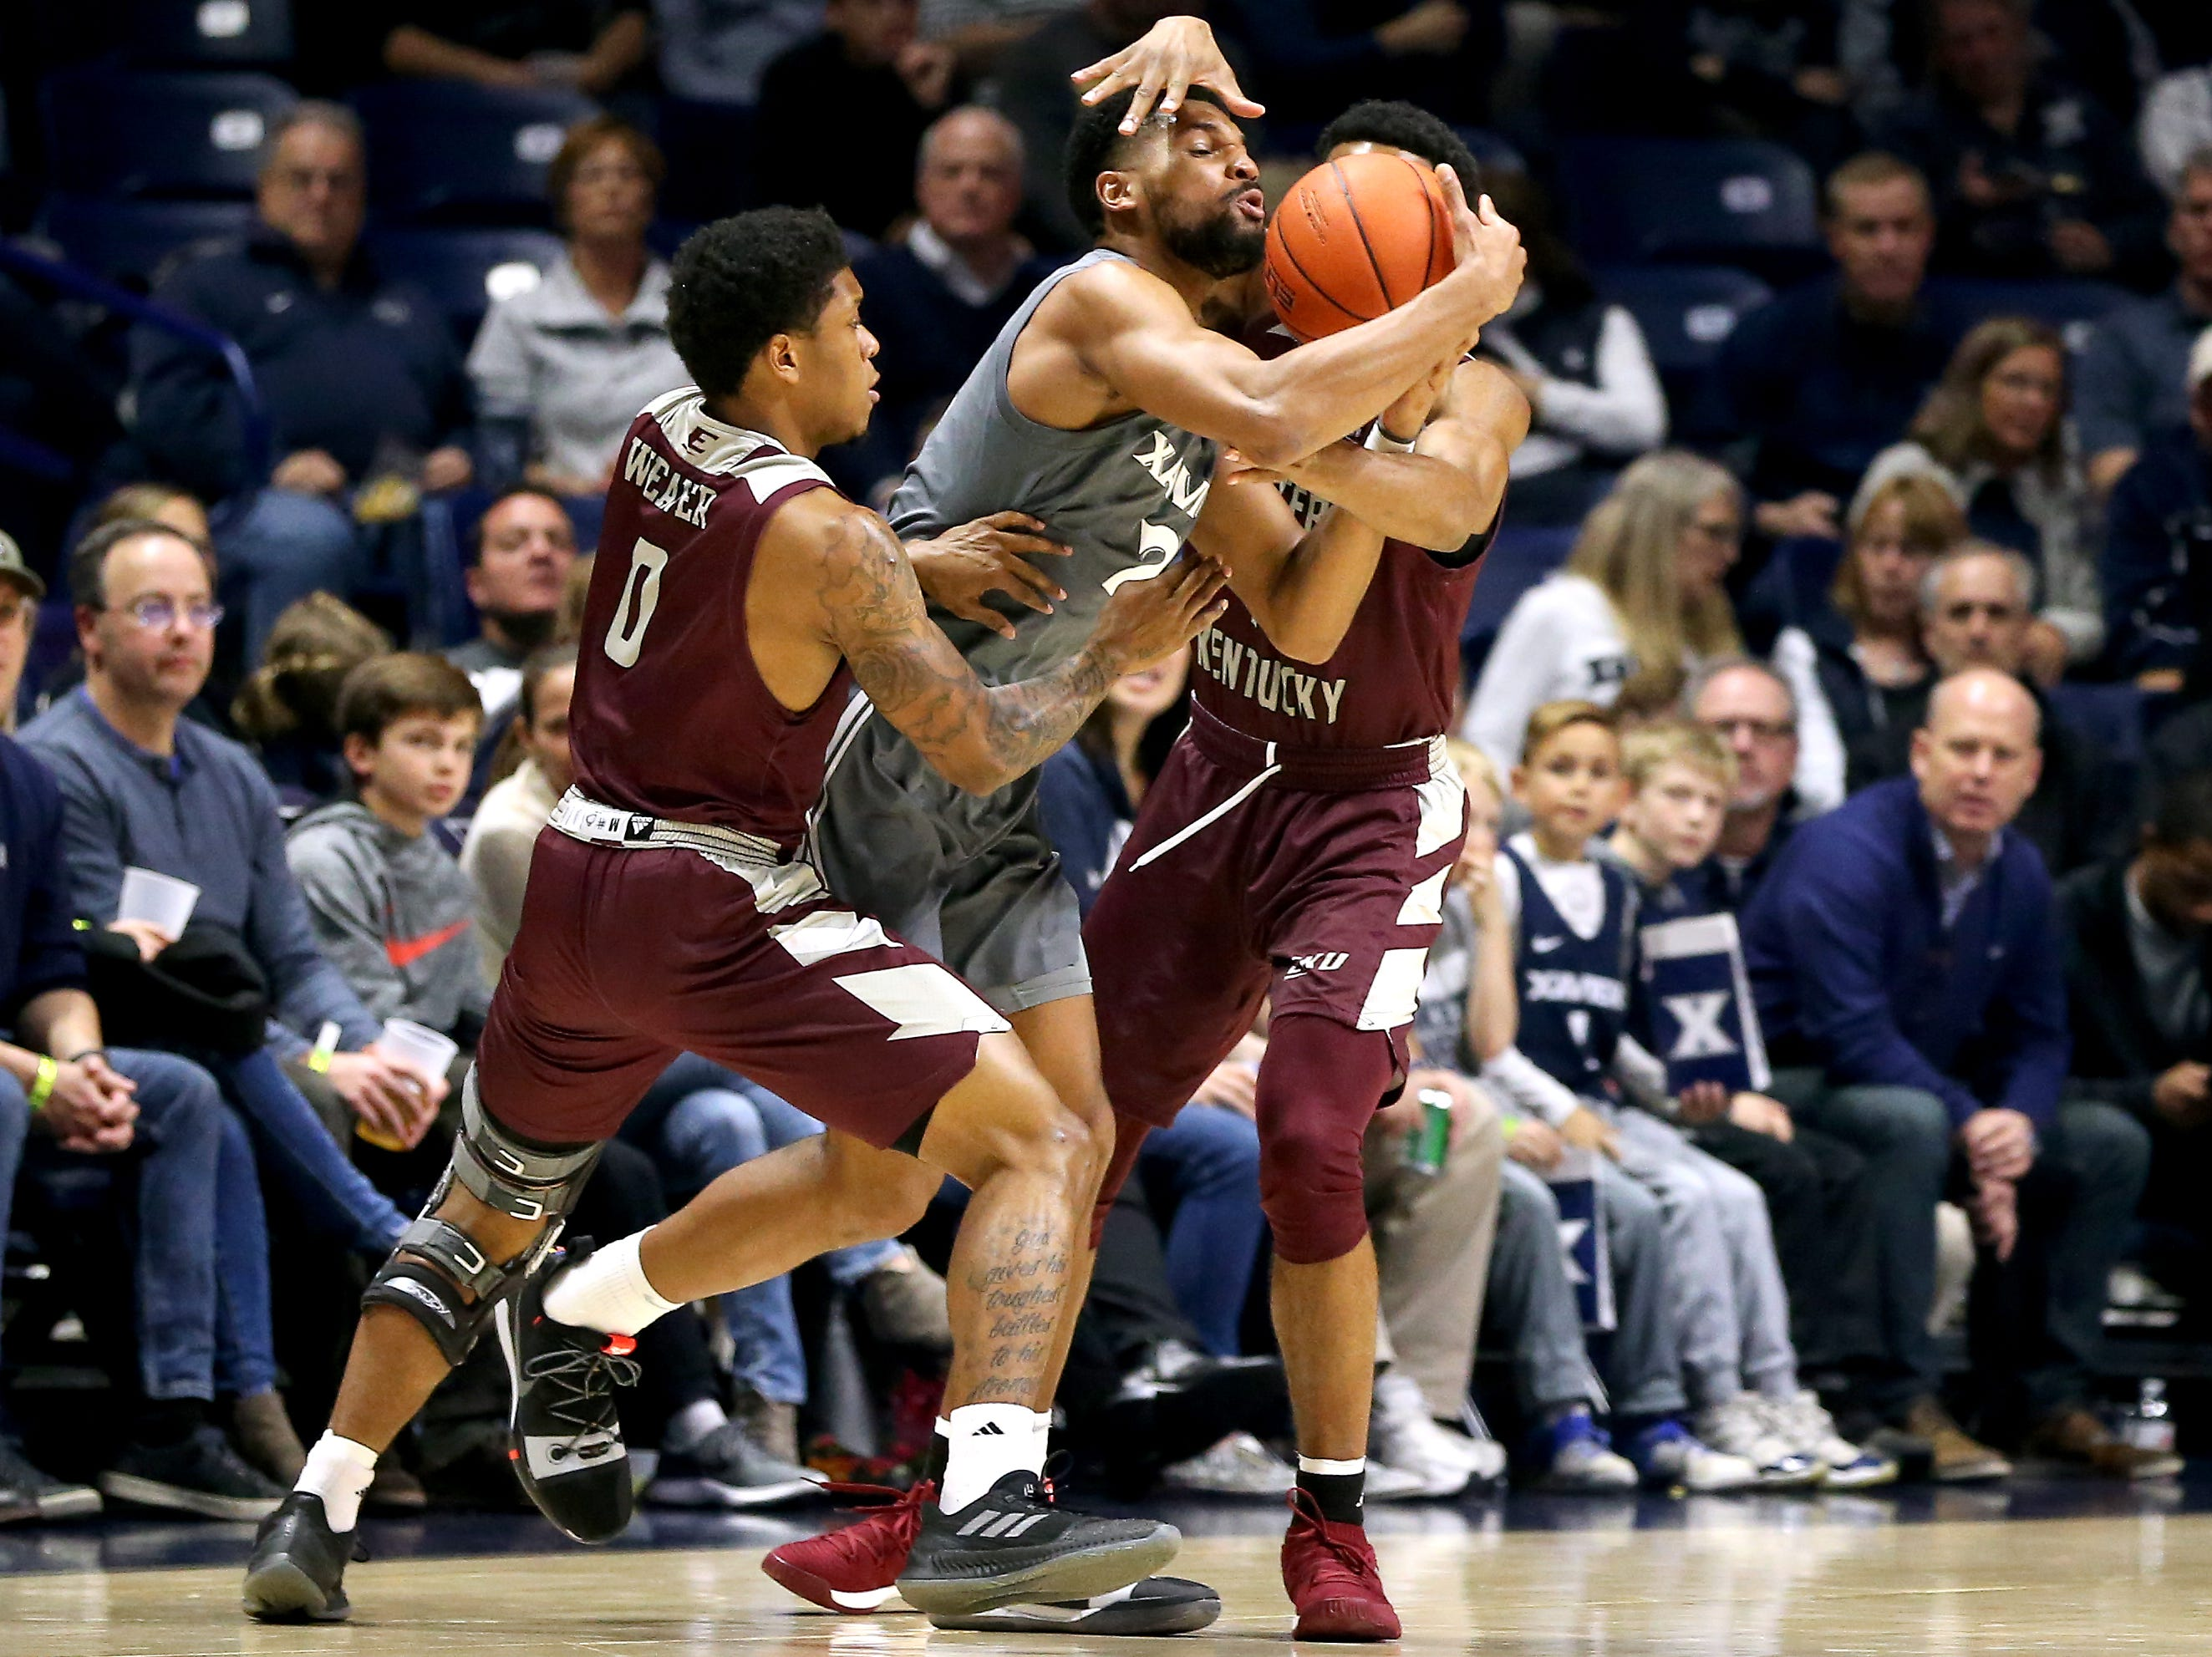 Xavier Musketeers guard Kyle Castlin (2) maintains possession as Eastern Kentucky Colonels guard Dujuanta Weaver (0), left, and Eastern Kentucky Colonels guard Jomaru Brown (11), right, defend in the first half of an NCAA college basketball game, Saturday, Dec. 15, 2018, at Cintas Center in Cincinnati, Ohio